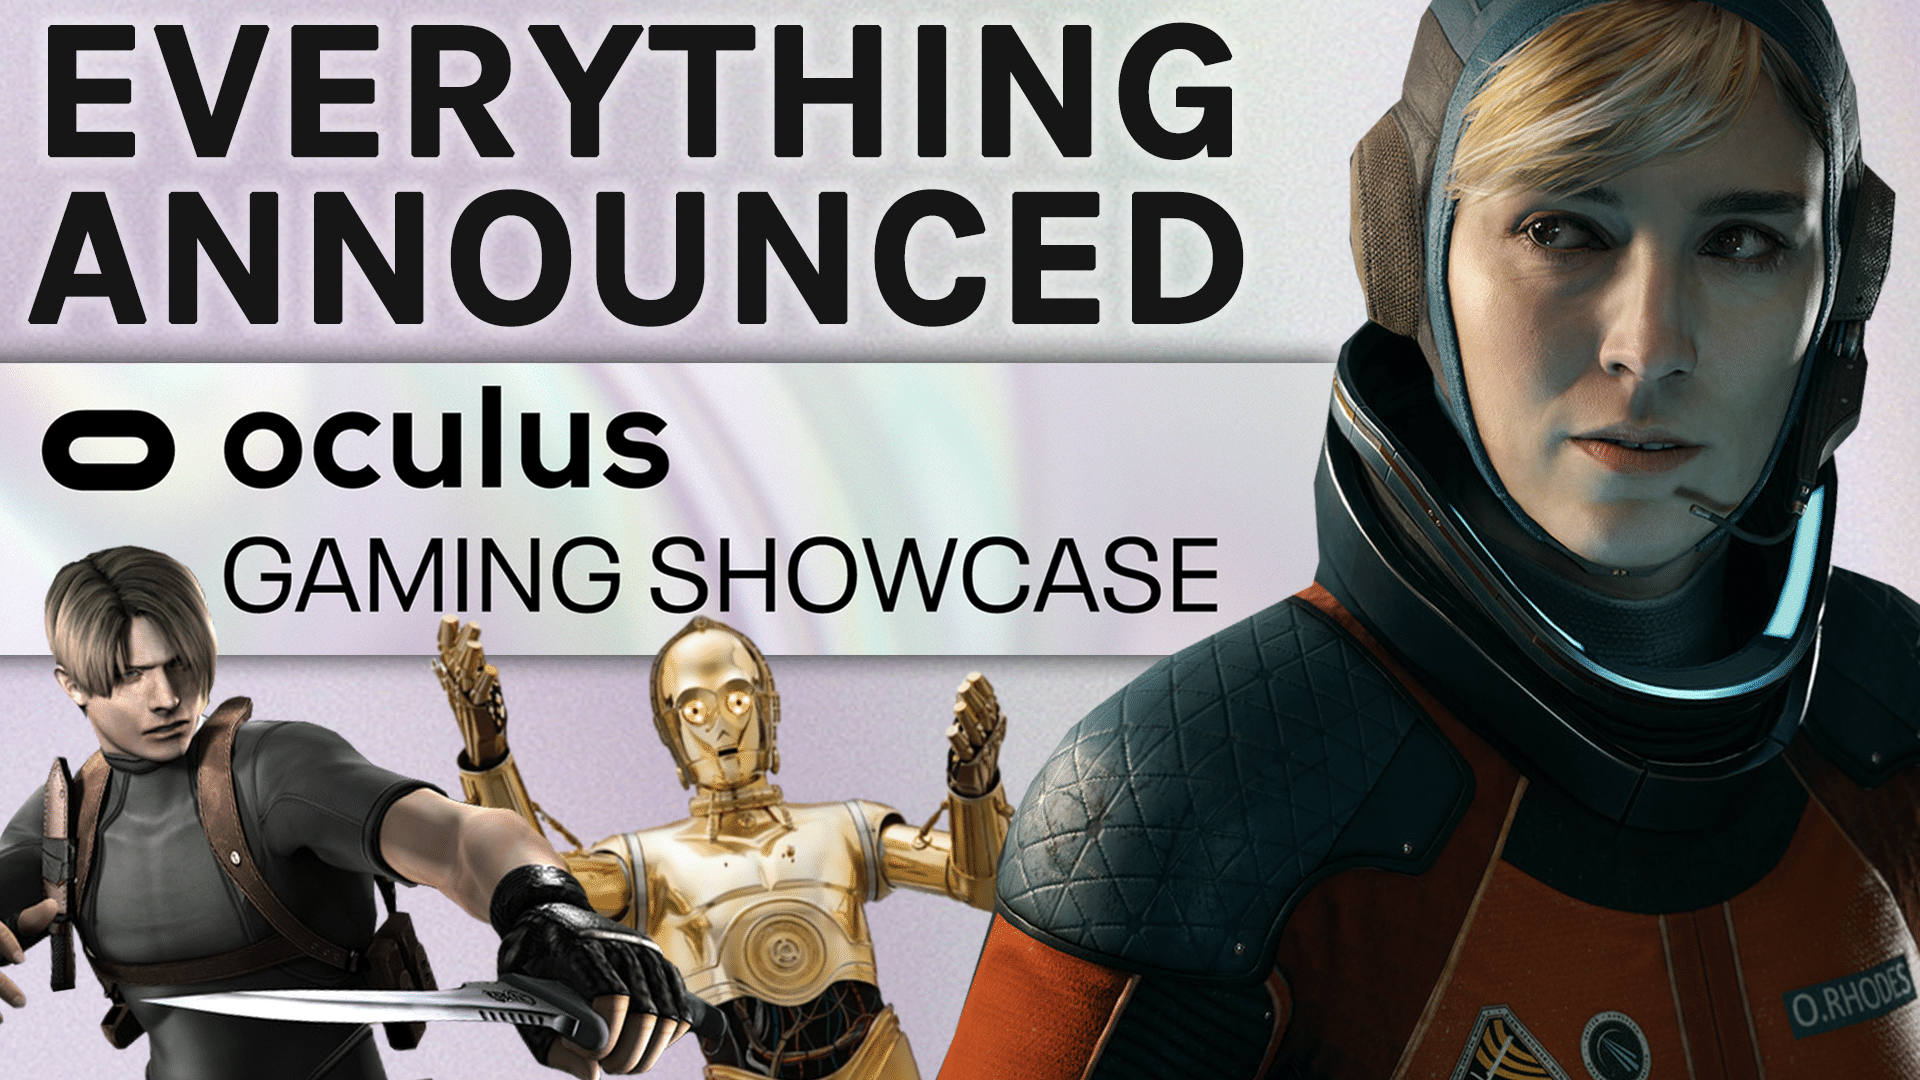 everything announced oculus gaming showcase